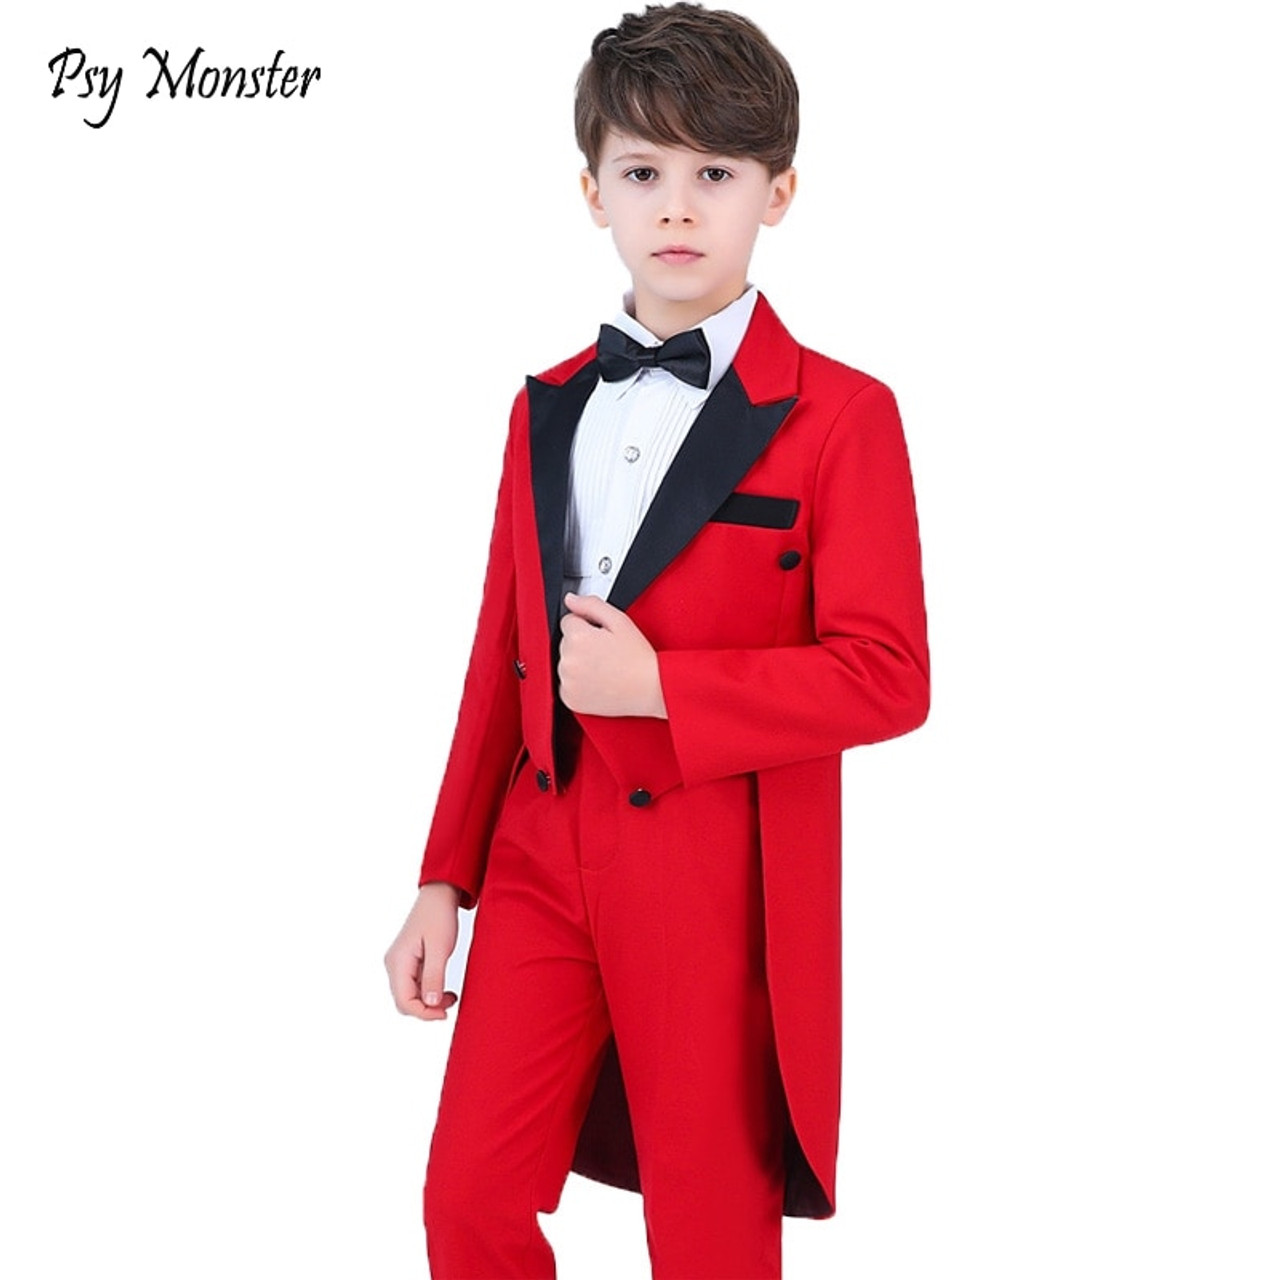 ee50eb101ad9 Boys Formal Dress Tuxedo Piano Performance Costume Flower Boys Birthday  Wedding Suits 5pcs Jacket + Shirt ...